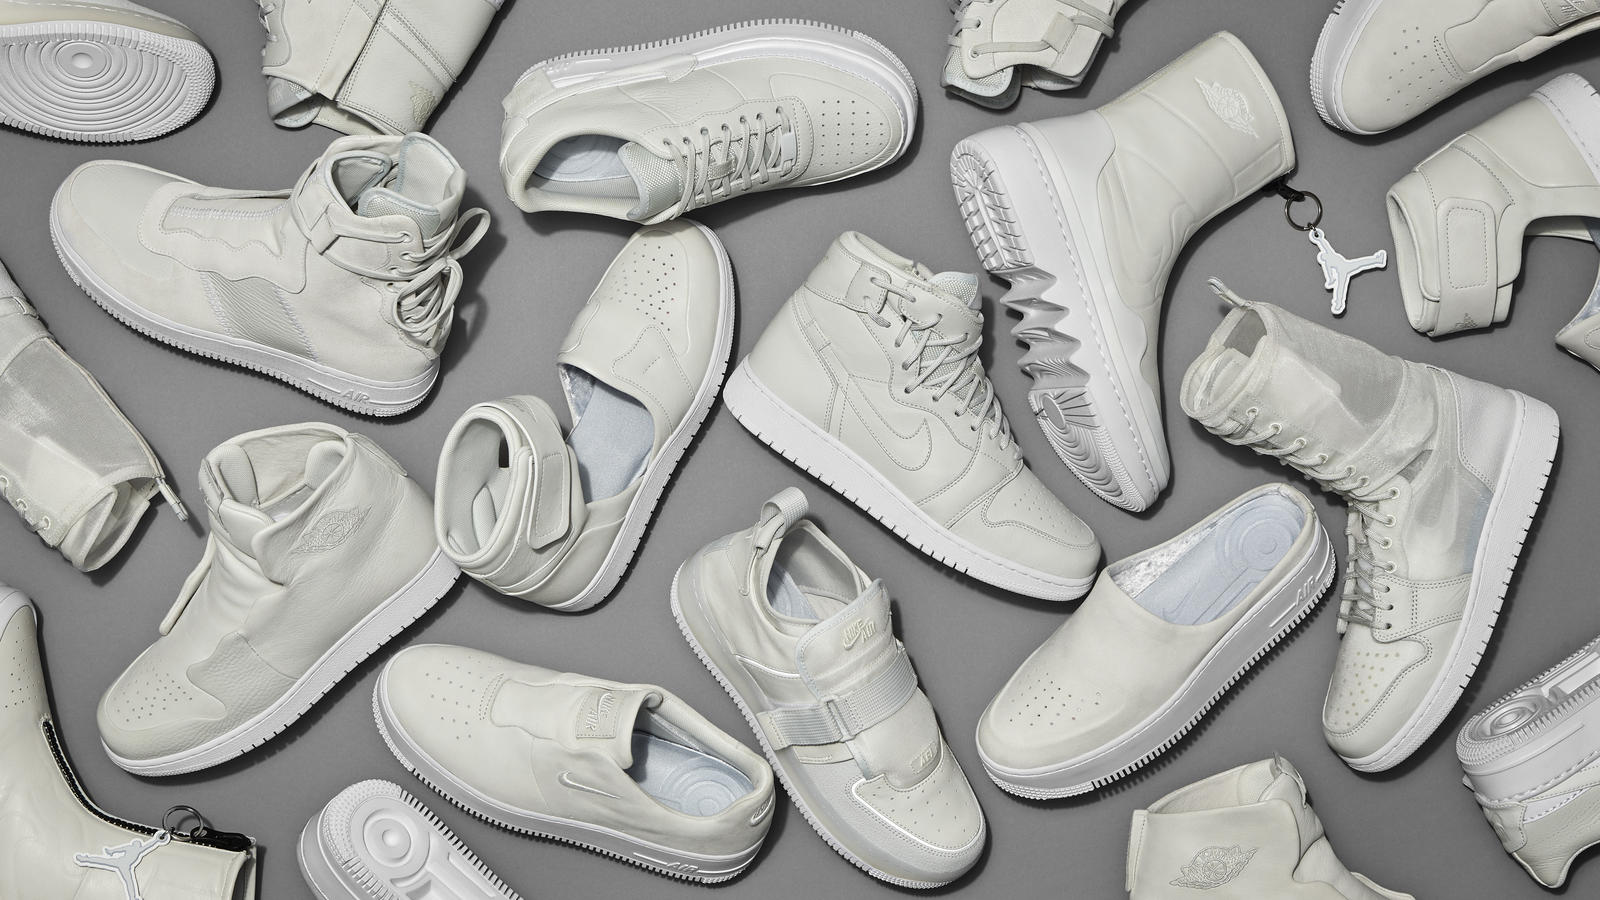 34565143f1e86 The Making of The 1 Reimagined - Nike News